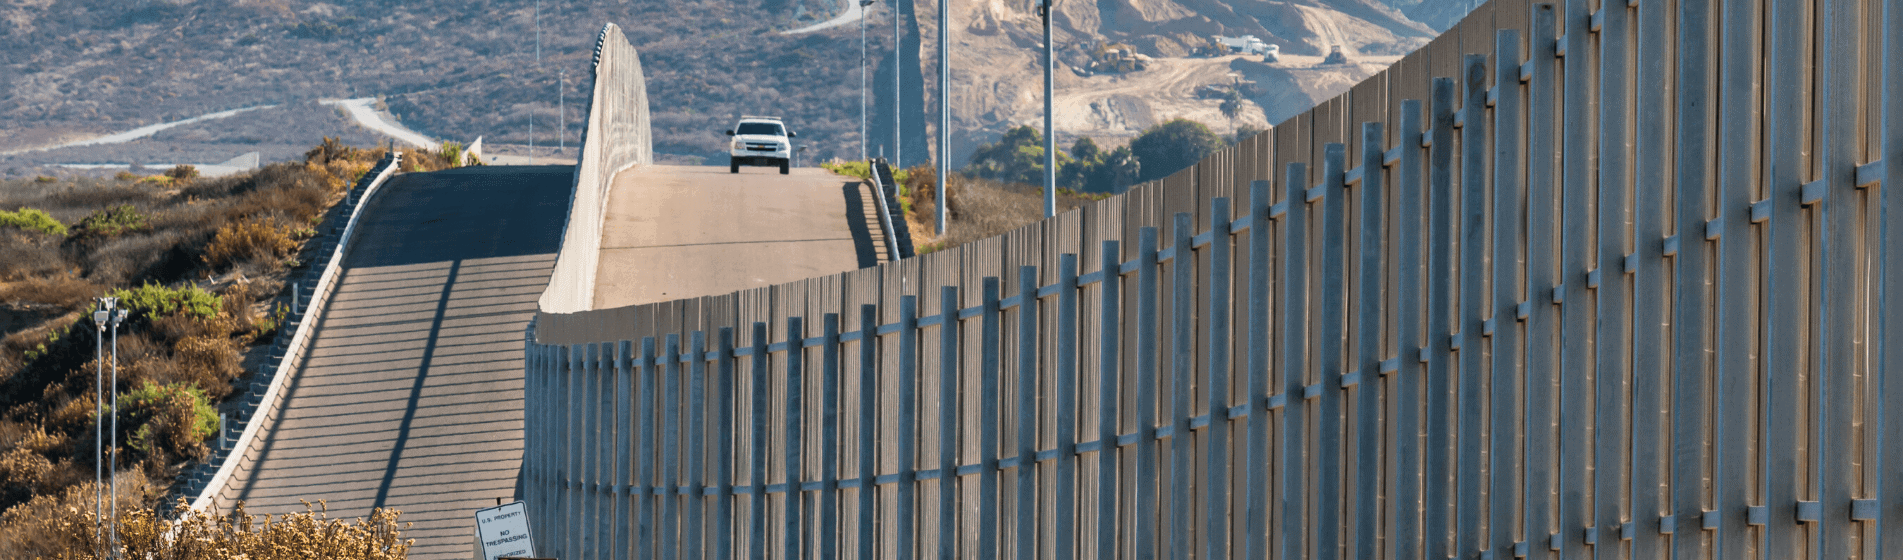 Trump's border wall: Why don't Americans ever threaten to move to Mexico?